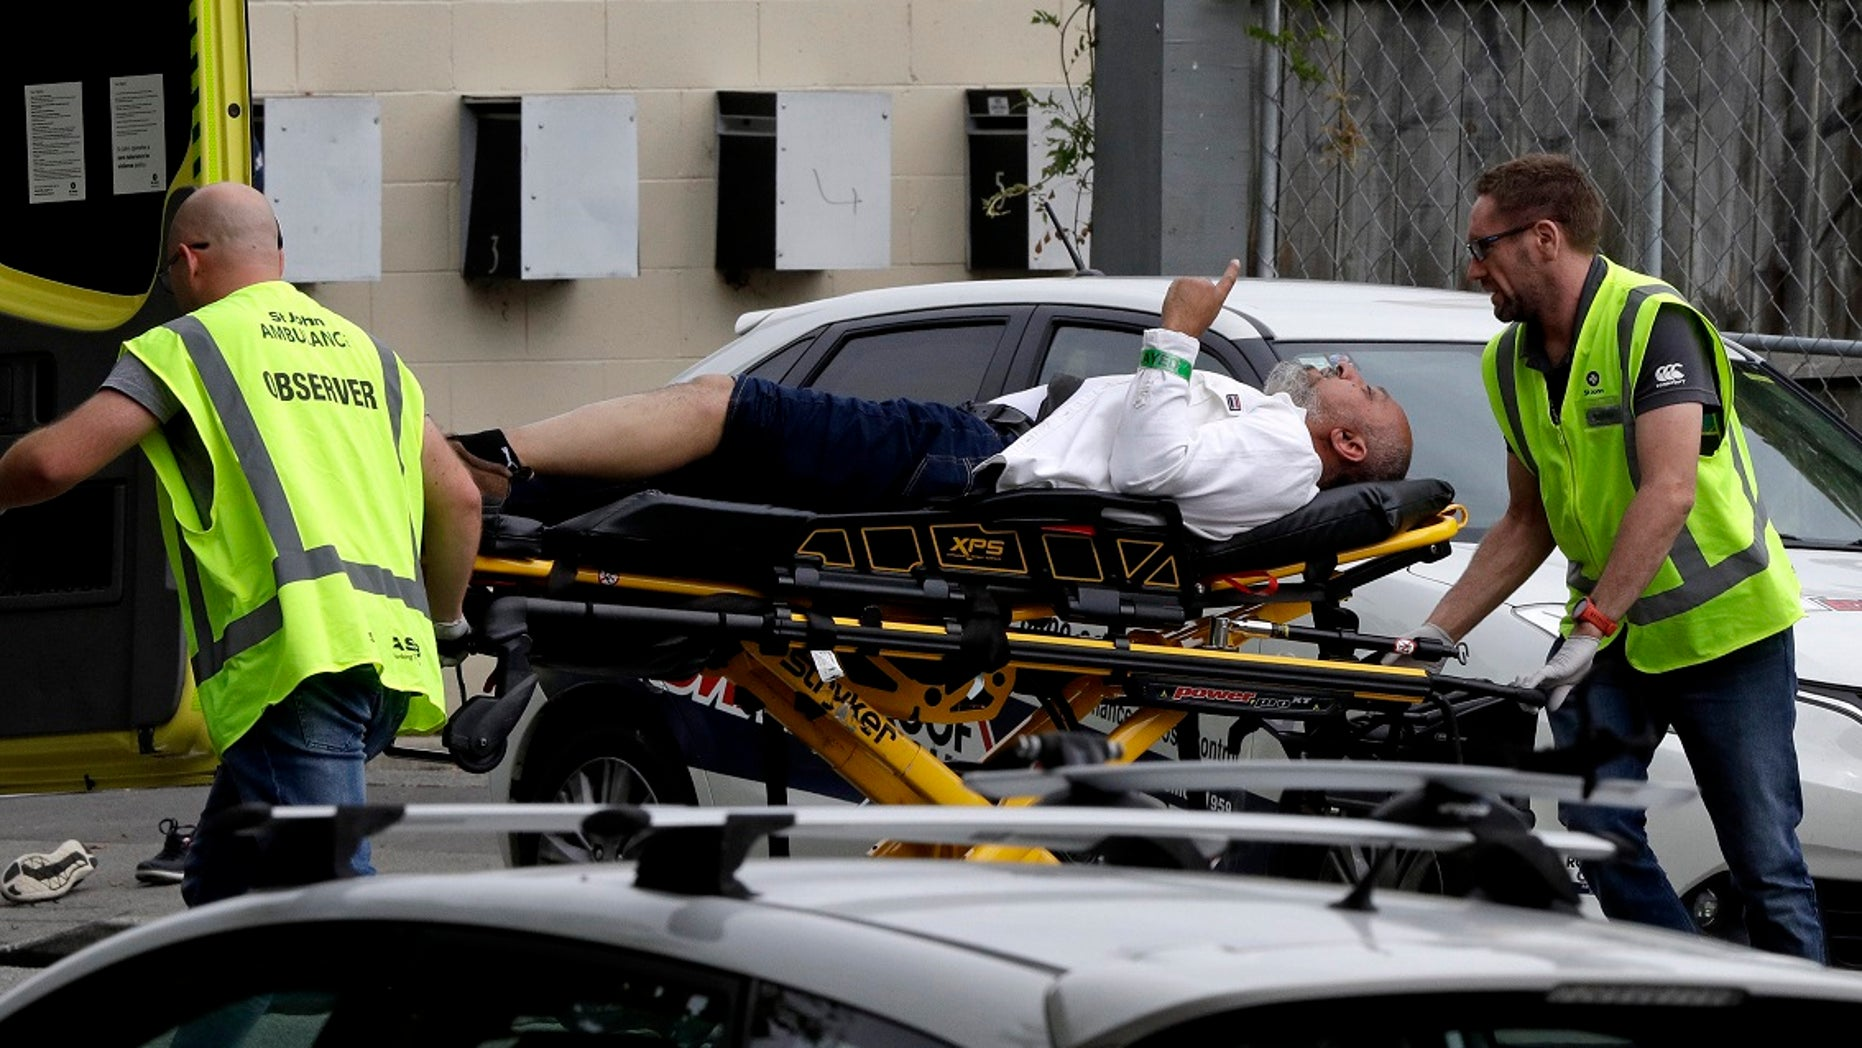 Shooting In New Zealand News: Multiple Fatalities At New Zealand Mosque Shooting: Police